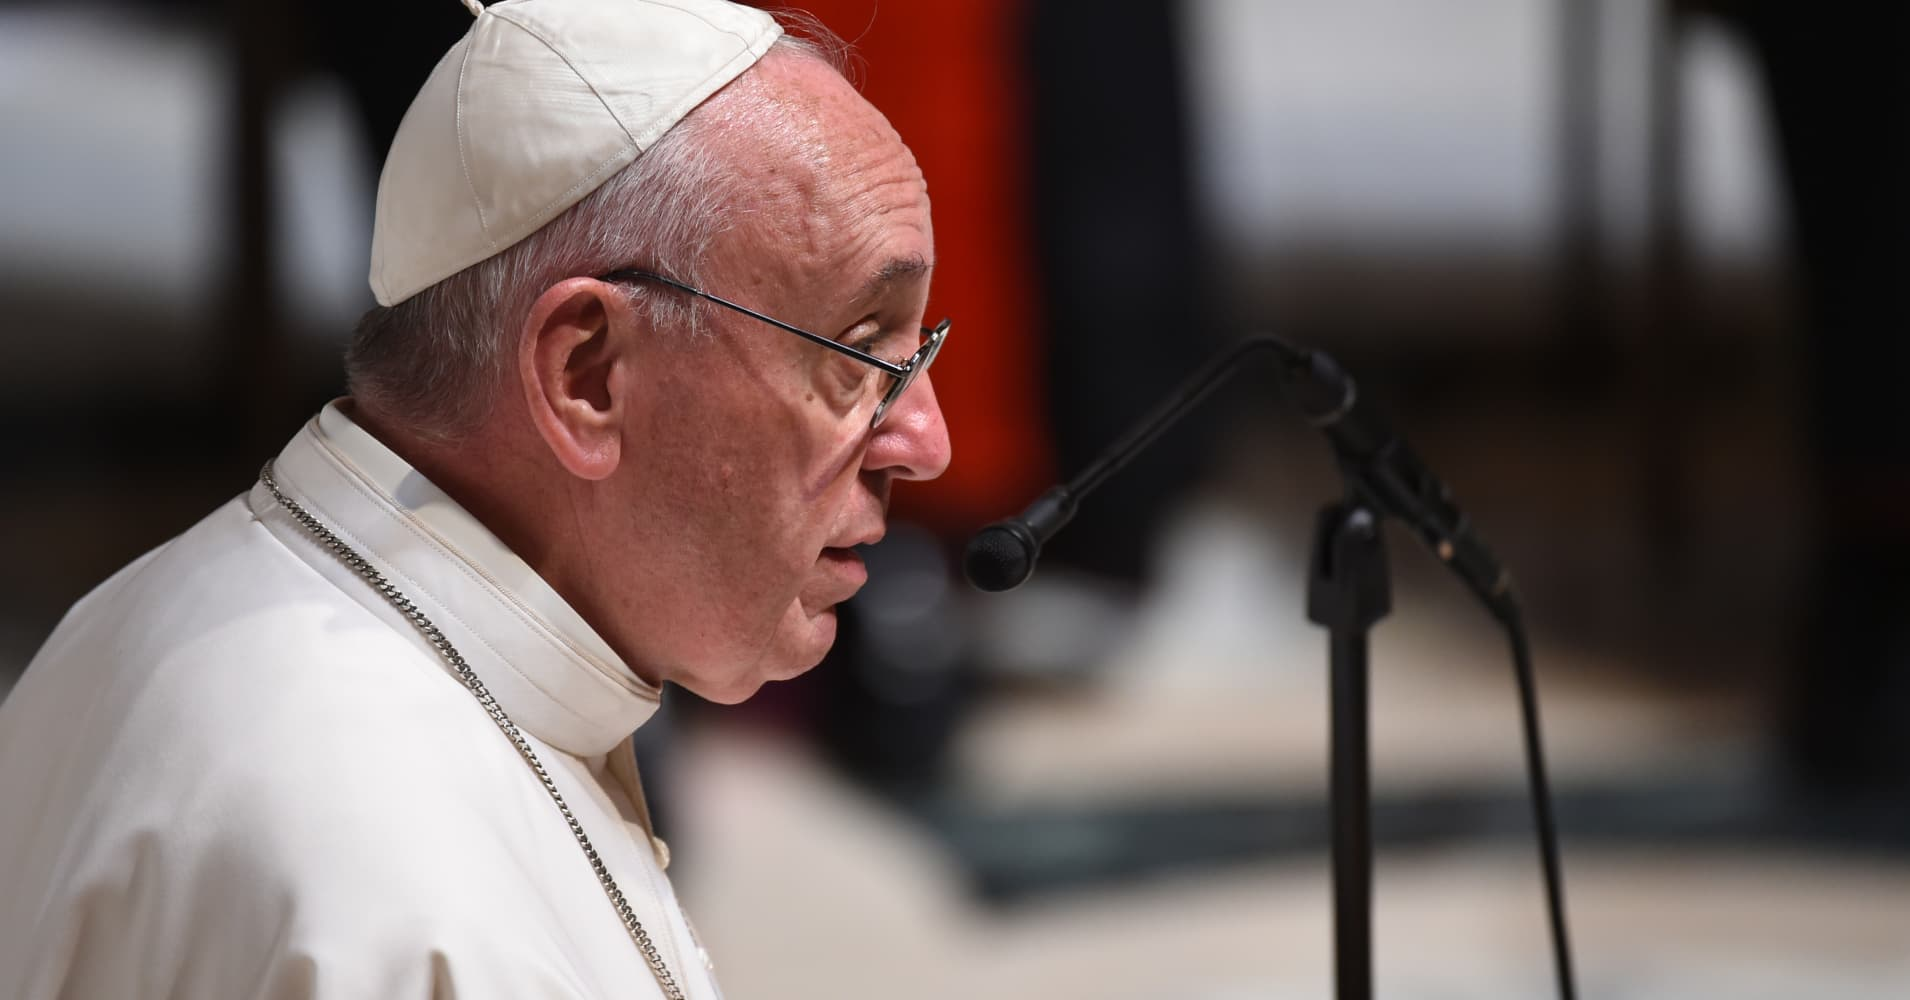 Pope Francis warns the world is at the brink of nuclear war